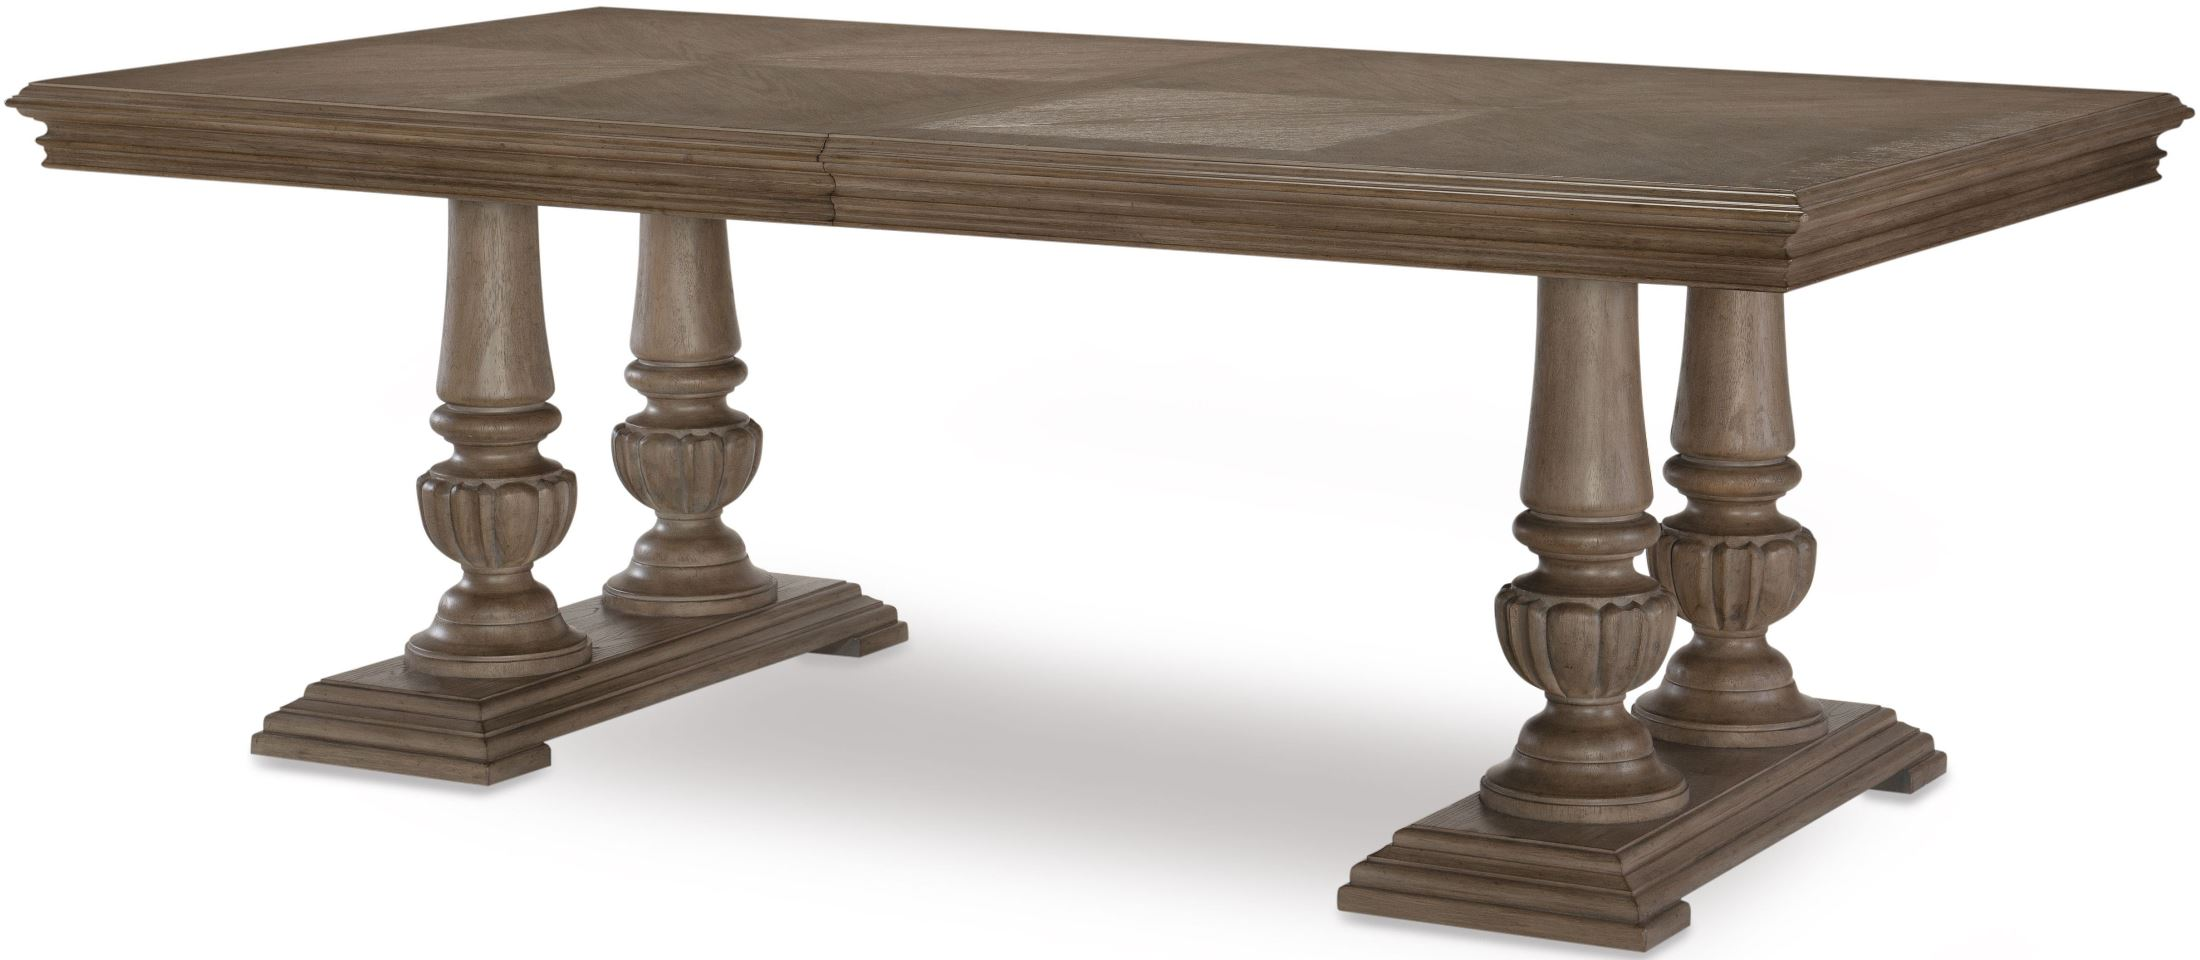 Manor House Cobblestone Rectangular Extendable Double Pedestal Dining Table